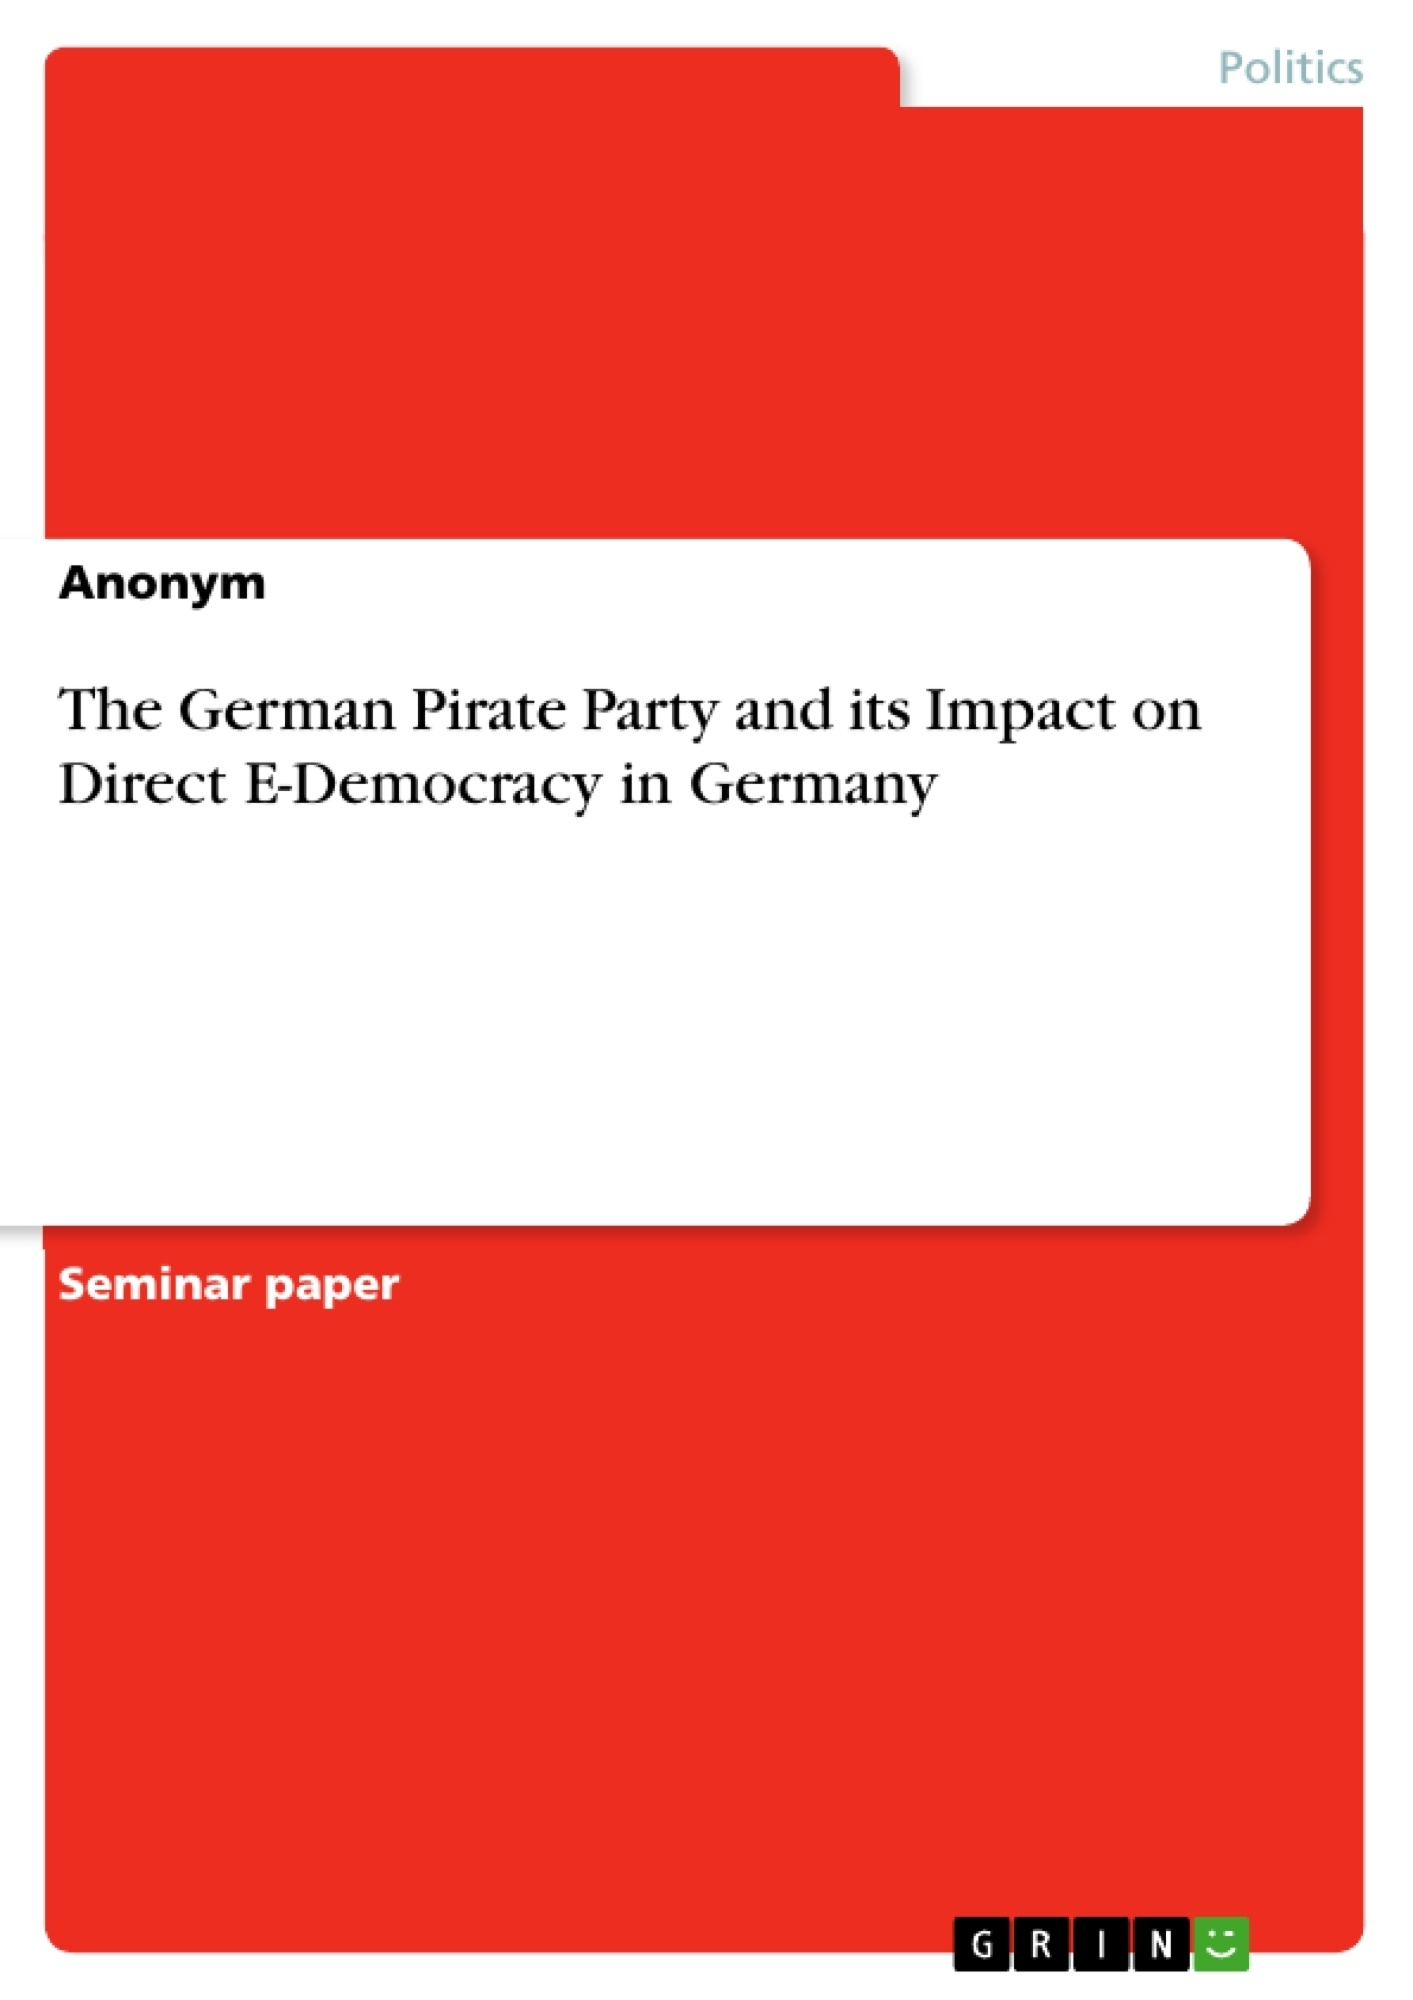 Titel: The German Pirate Party and its Impact on Direct E-Democracy in Germany